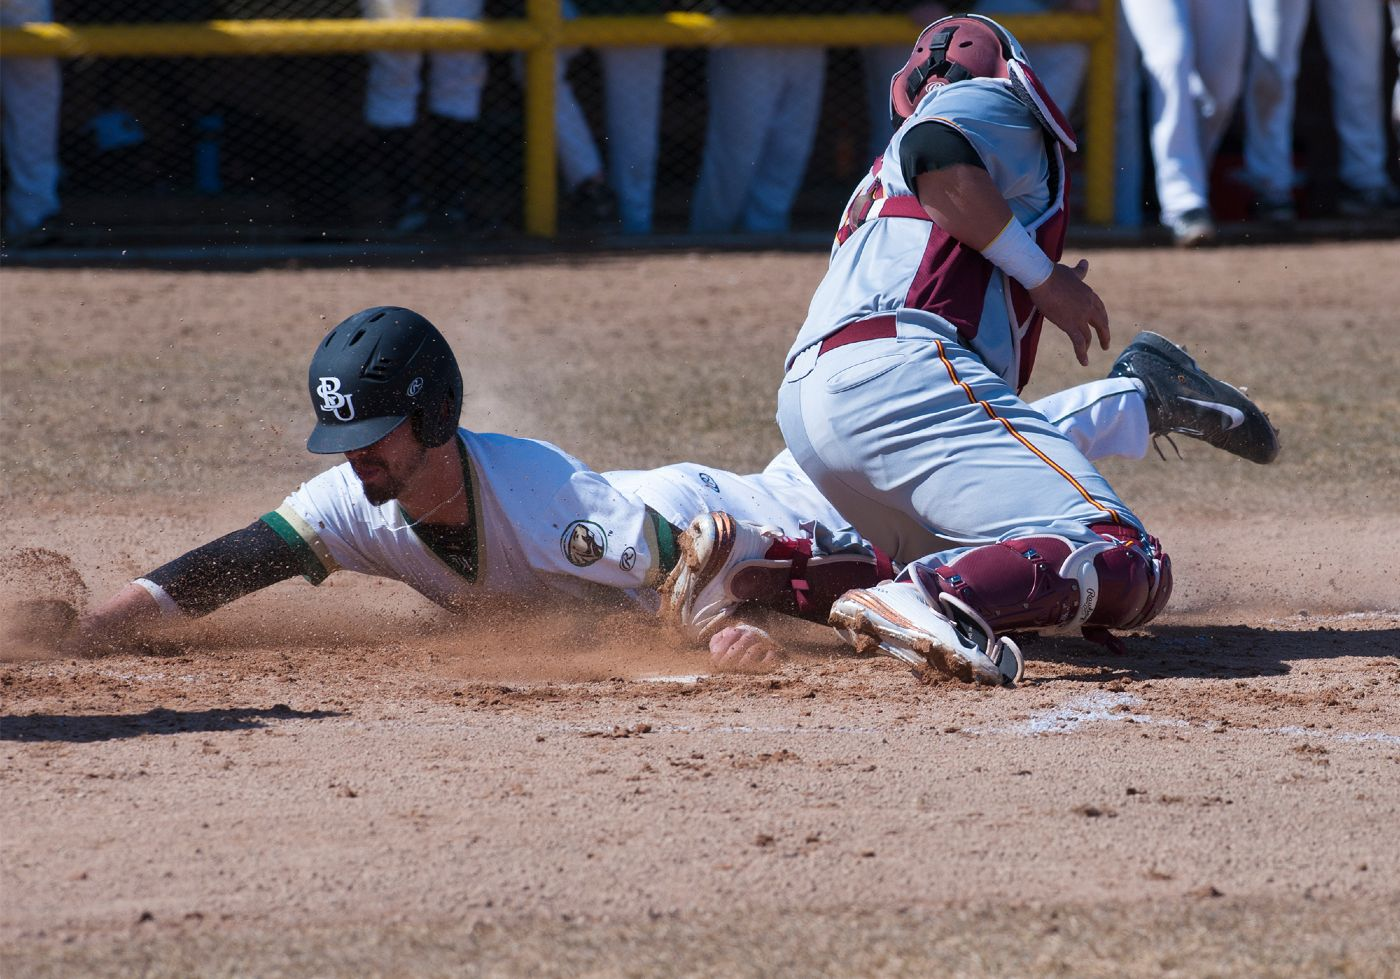 Cisneros, Litchy aid in rally of game one in sweep to Oklahoma City